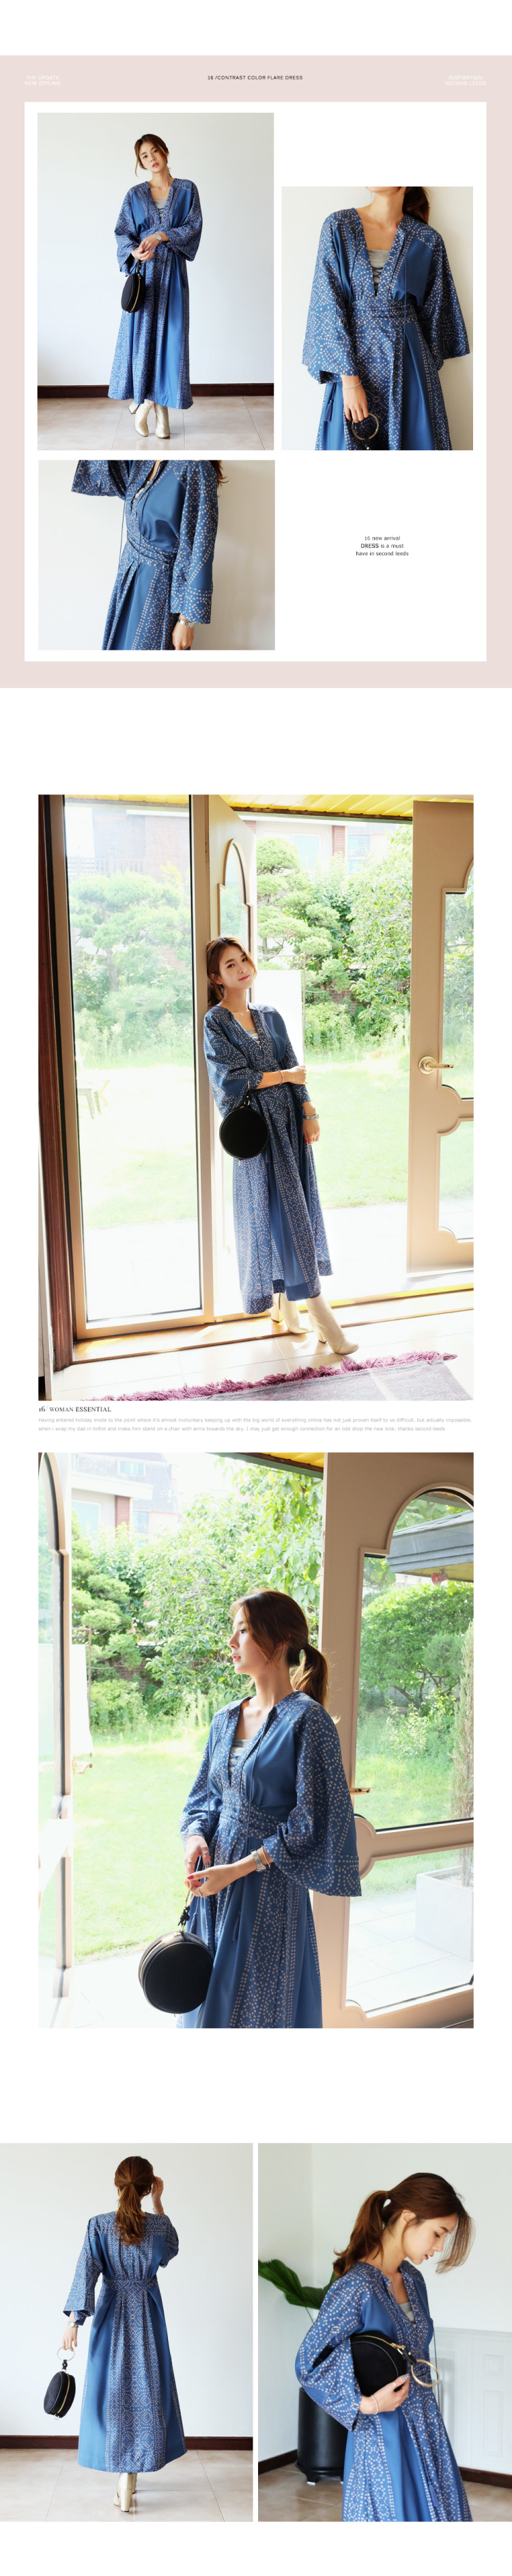 New-retro-blue-long-dress-V-neck-sweet-vintage-loose-slim-maxi-blue-dress-printing-elegant-holiday-l-32738597192